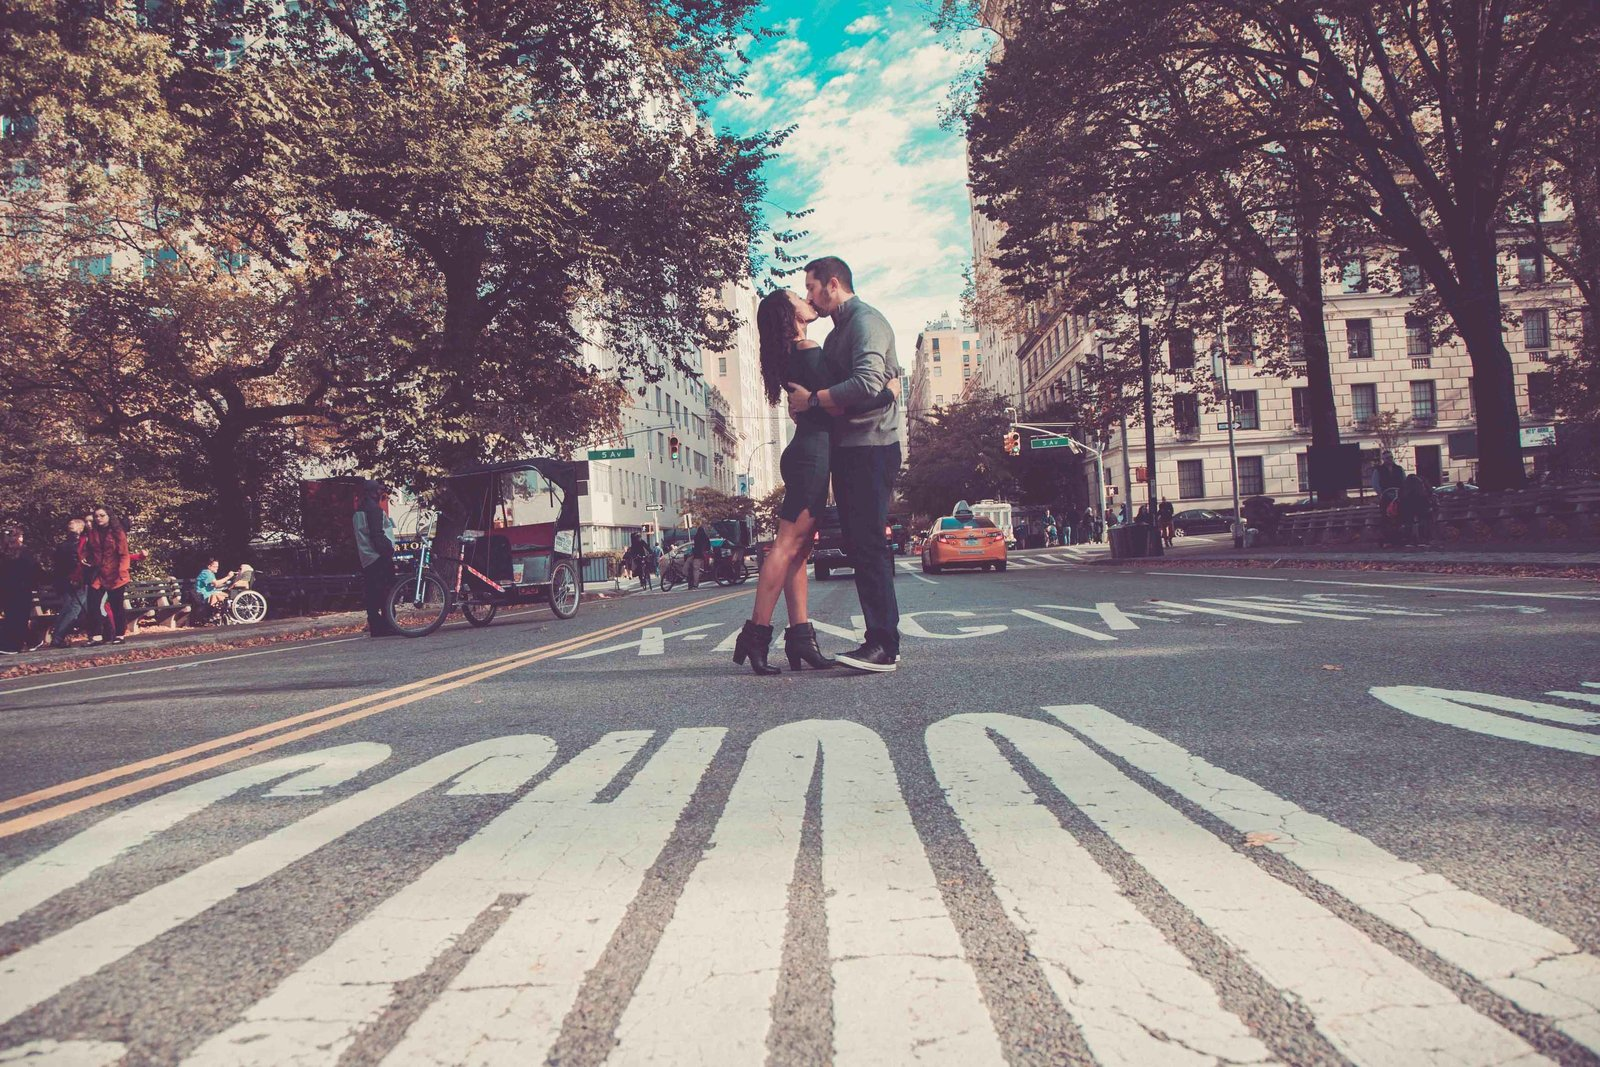 Wide angle of couple in middle of NYC street.